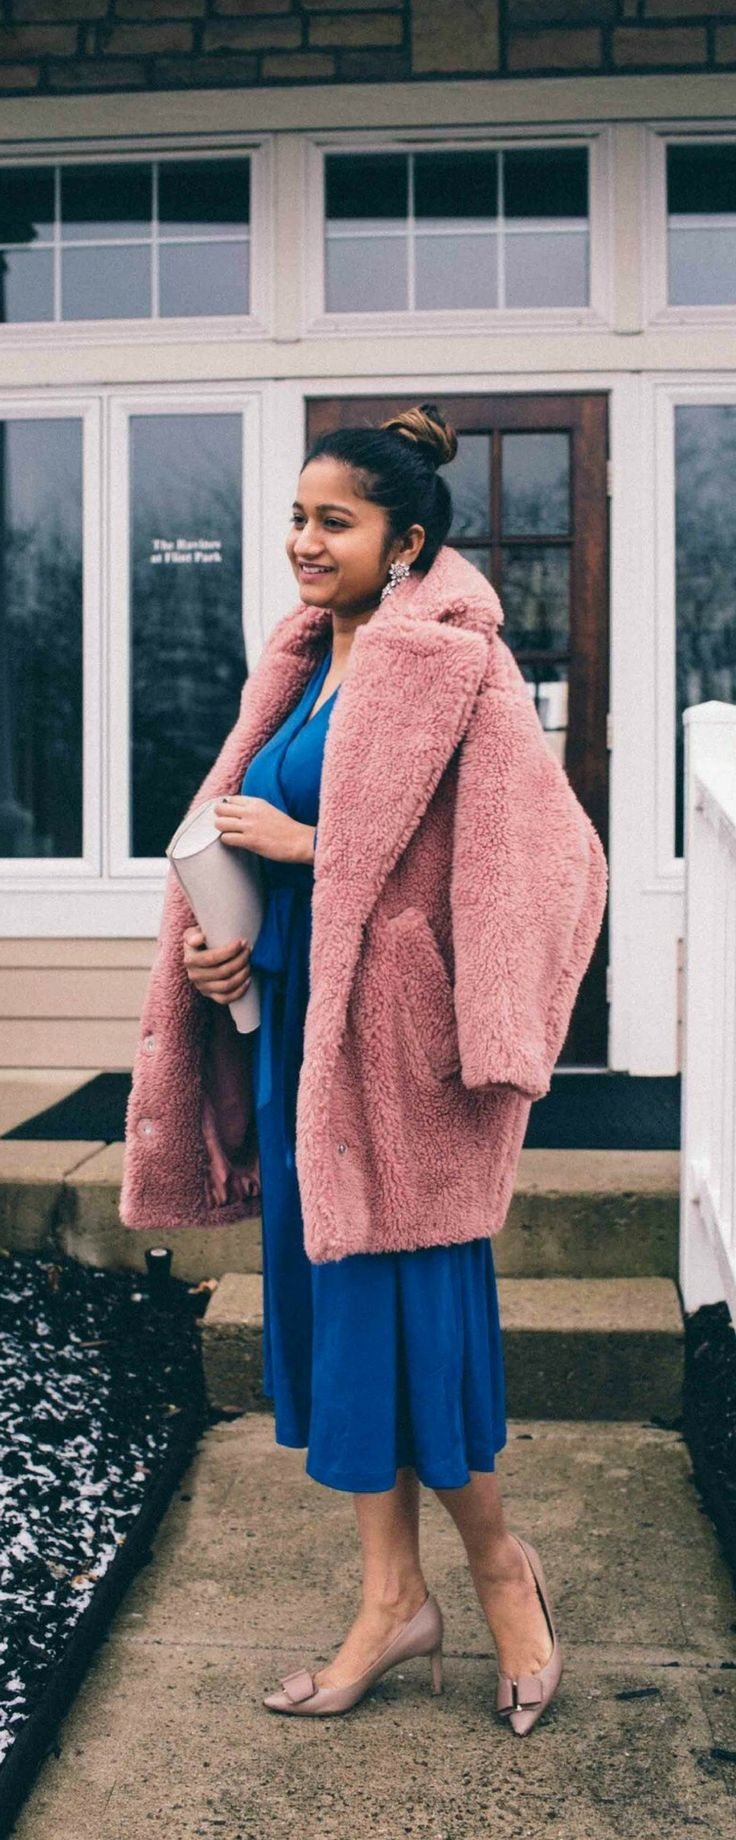 Valentine's Day gift guide for him   dresses up V day outfit --------------------------------- wrap dress, blue wrap dress, faux fut coat, pink fur coat, valentines day outfit ideas 2018, valentines outfit, v day outfit 2018, Aldo earrings, Ferragamo bow pumps, Kate spade cedar street mini bag or clutch, topshop faux fur coat, chic v day outfit, elegant outfit,